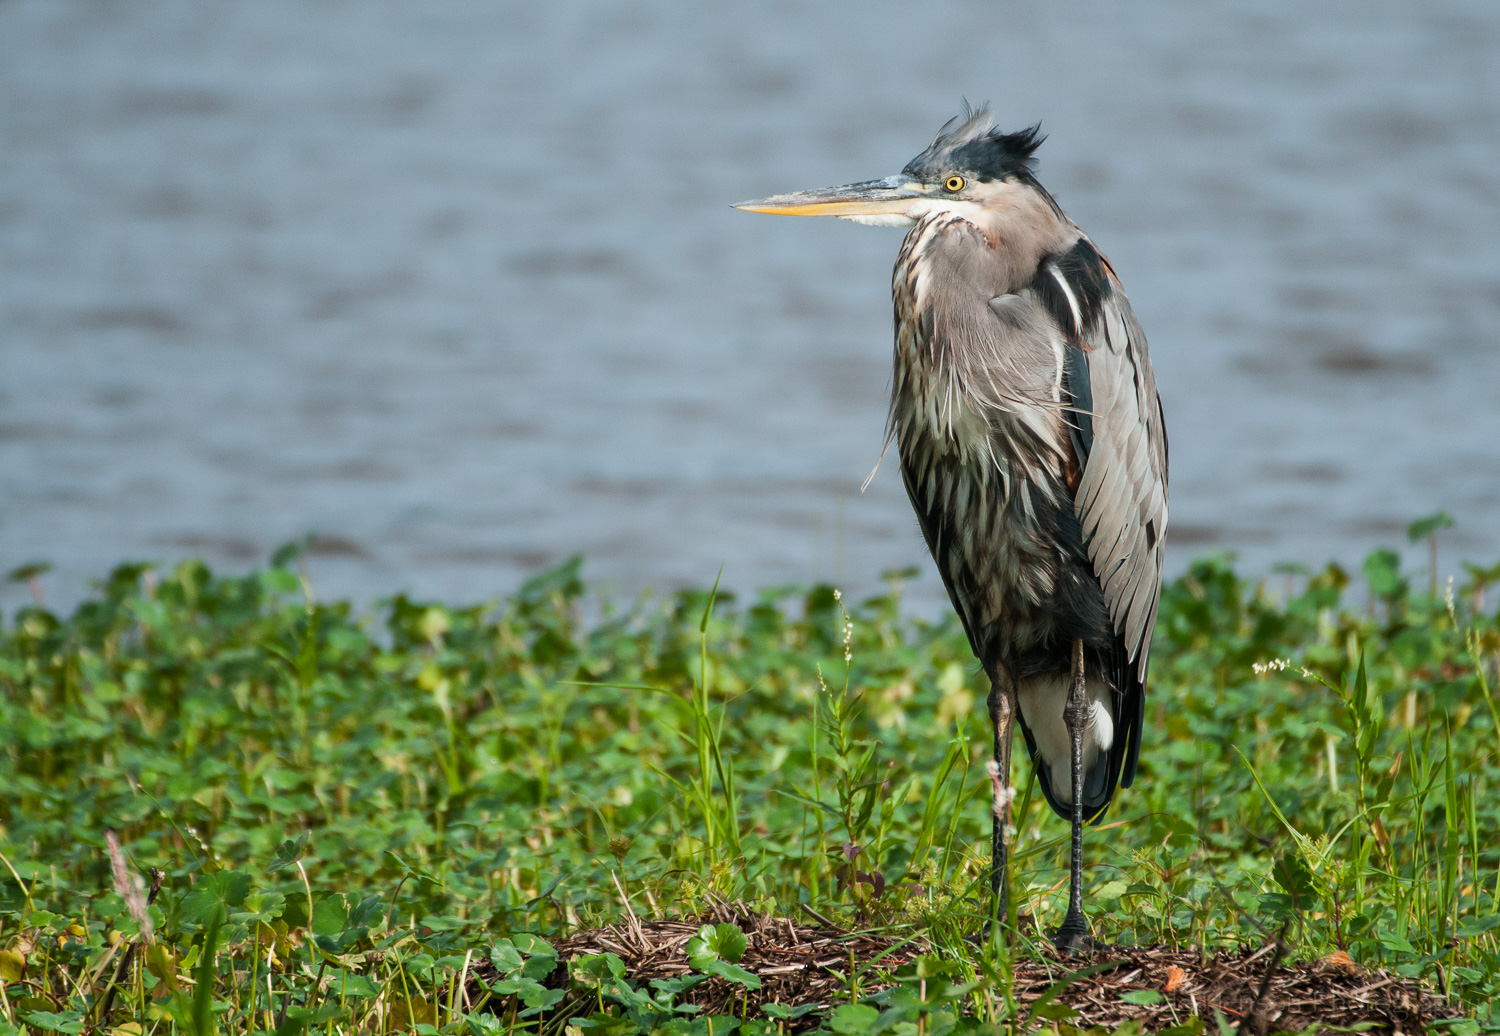 Wind beginning to raise the feathers on the head of a Great Blue Heron